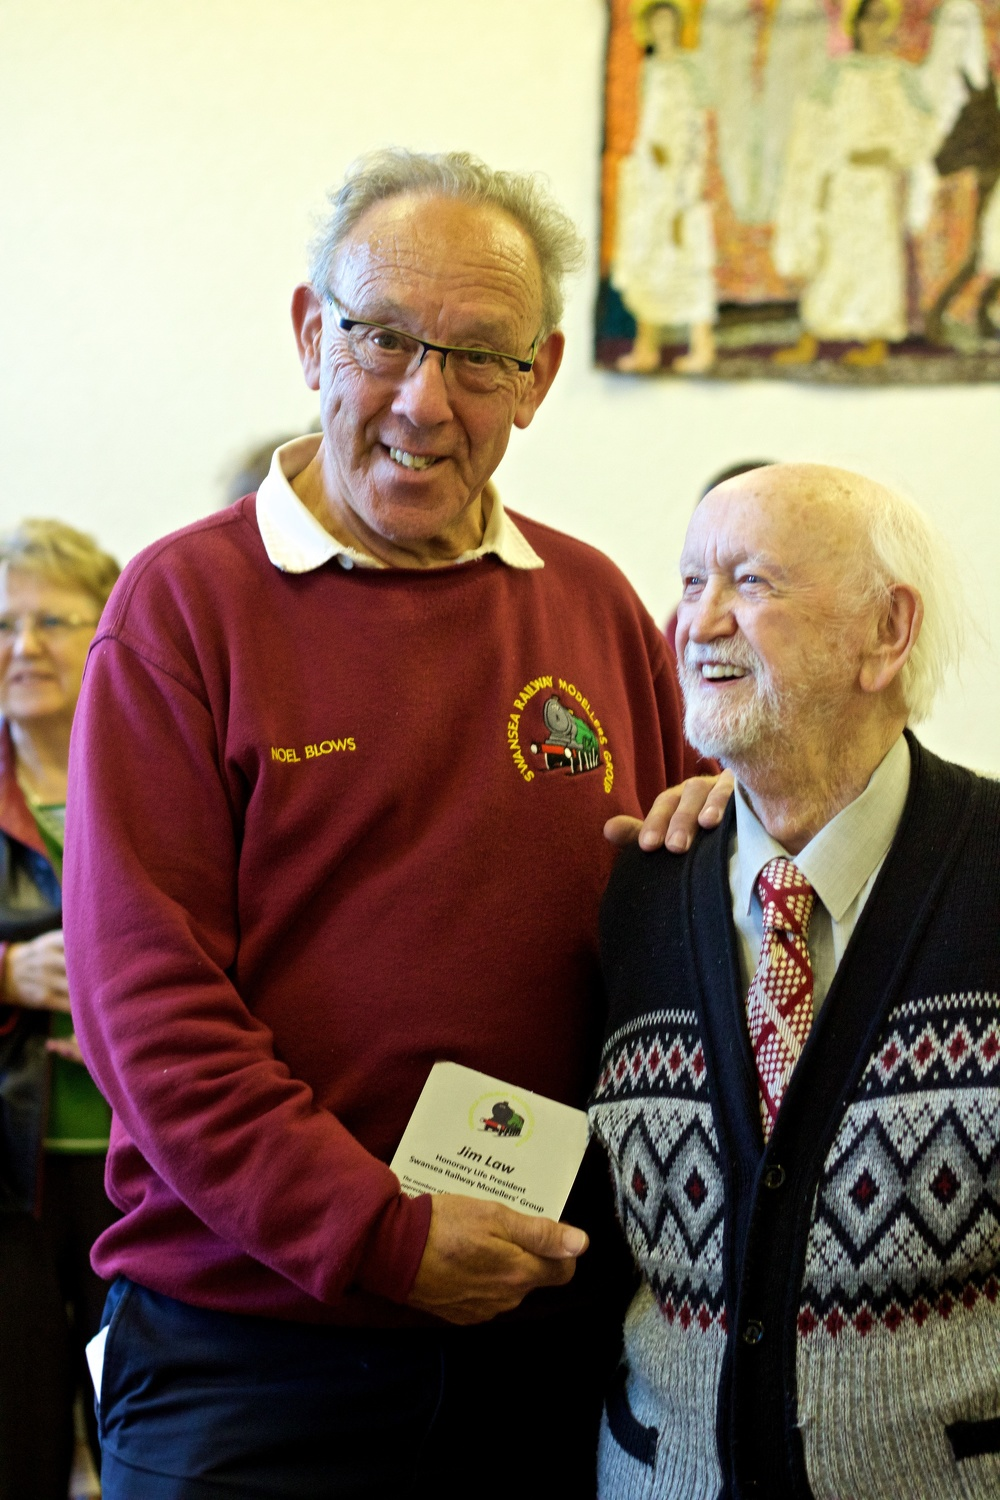 Noel Blows and Jim Law – plaque presentation - Photo Gwion Rhys Davies